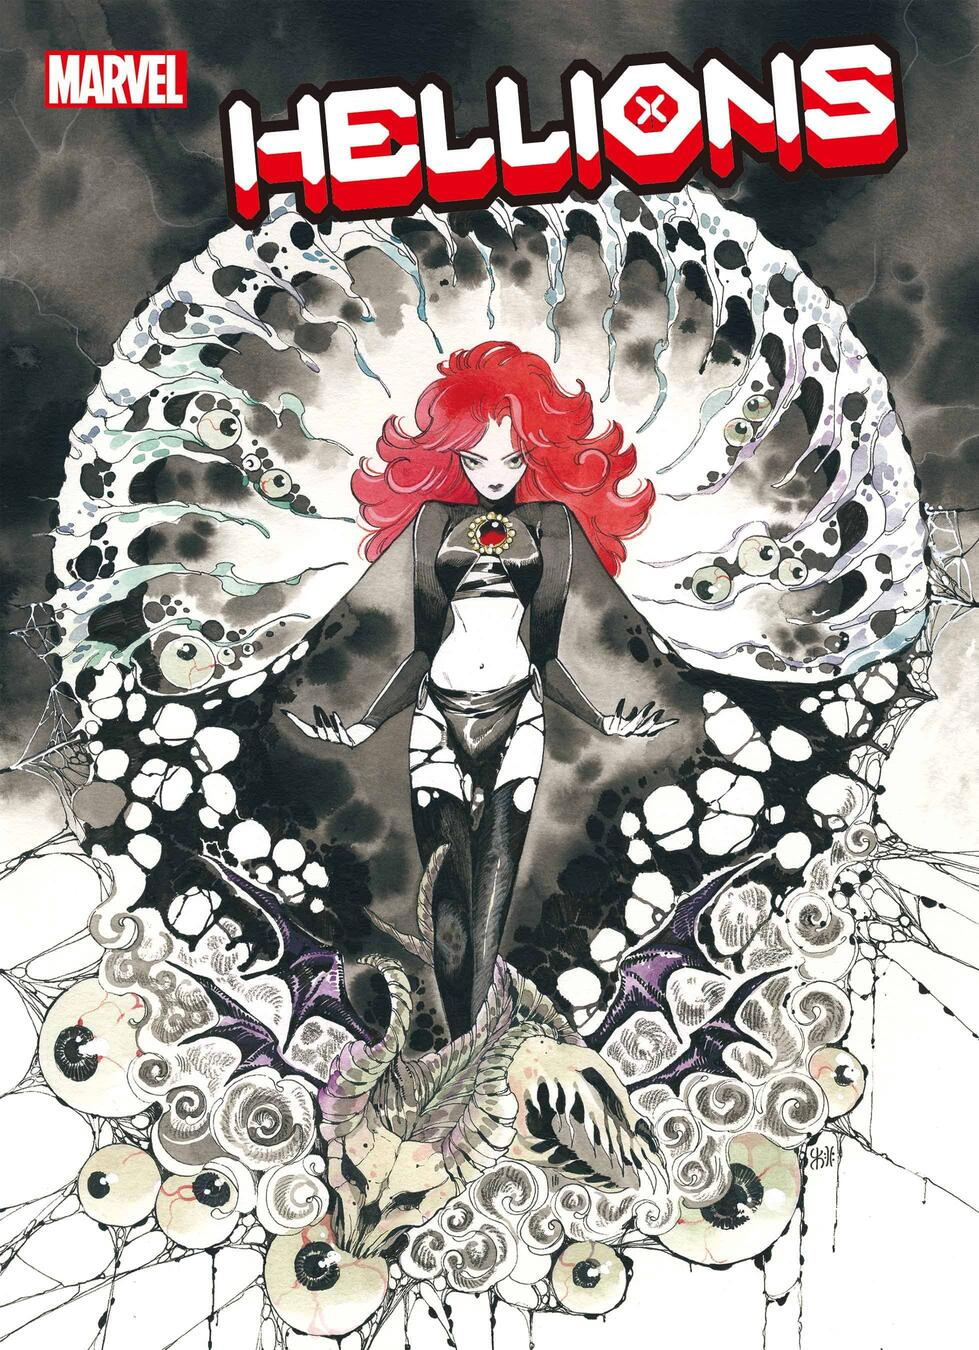 HELLIONS #18 variant cover by Peach Momoko